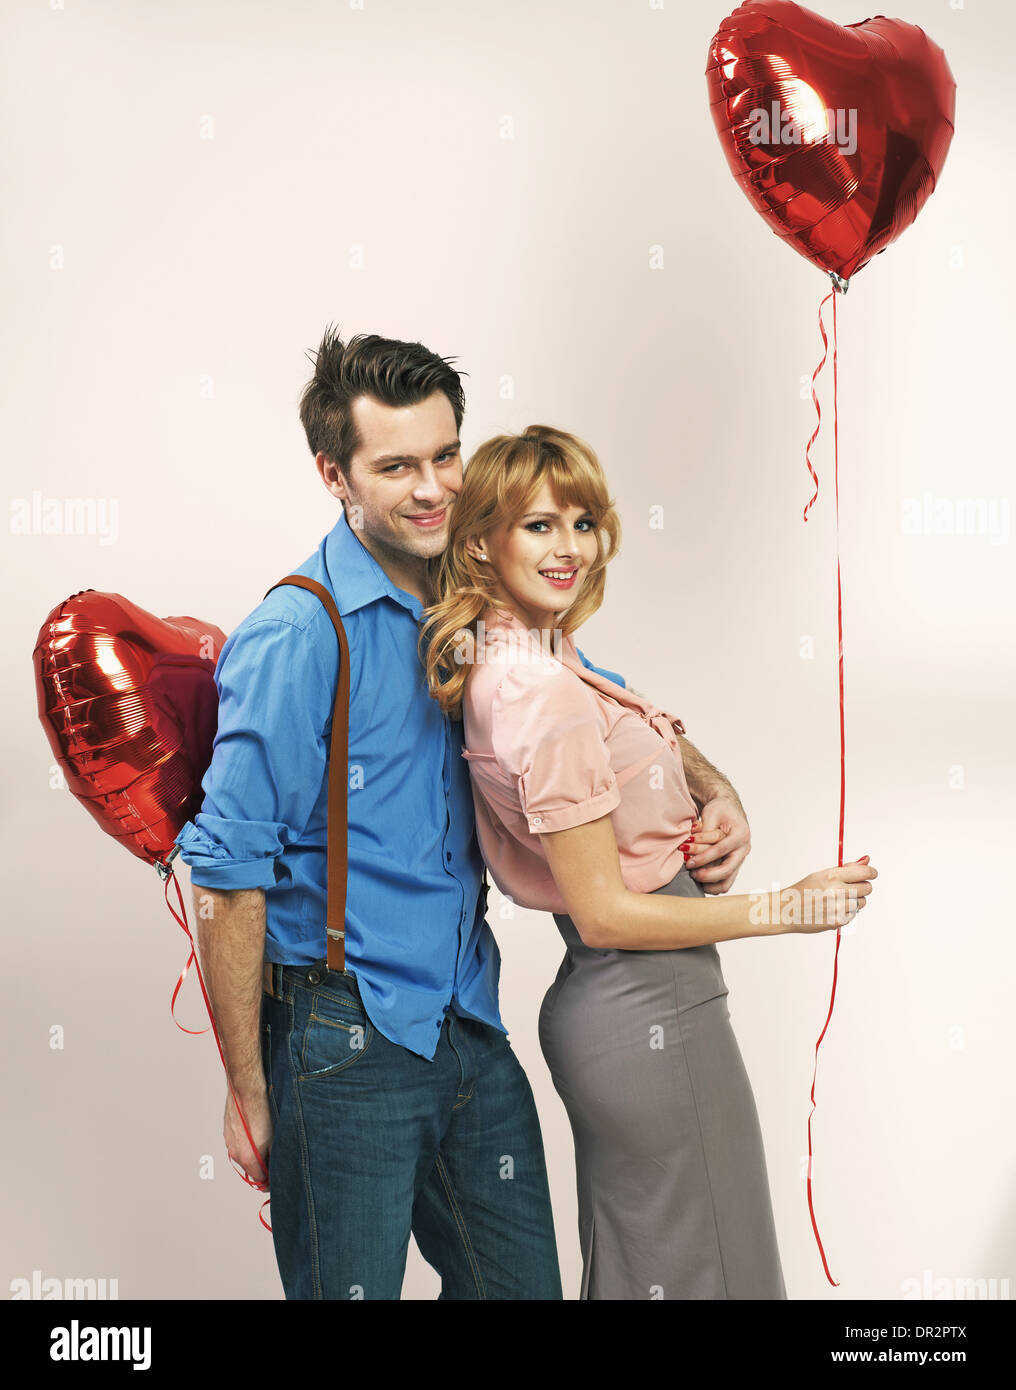 Loving young couple during the valentine's day - Stock Image